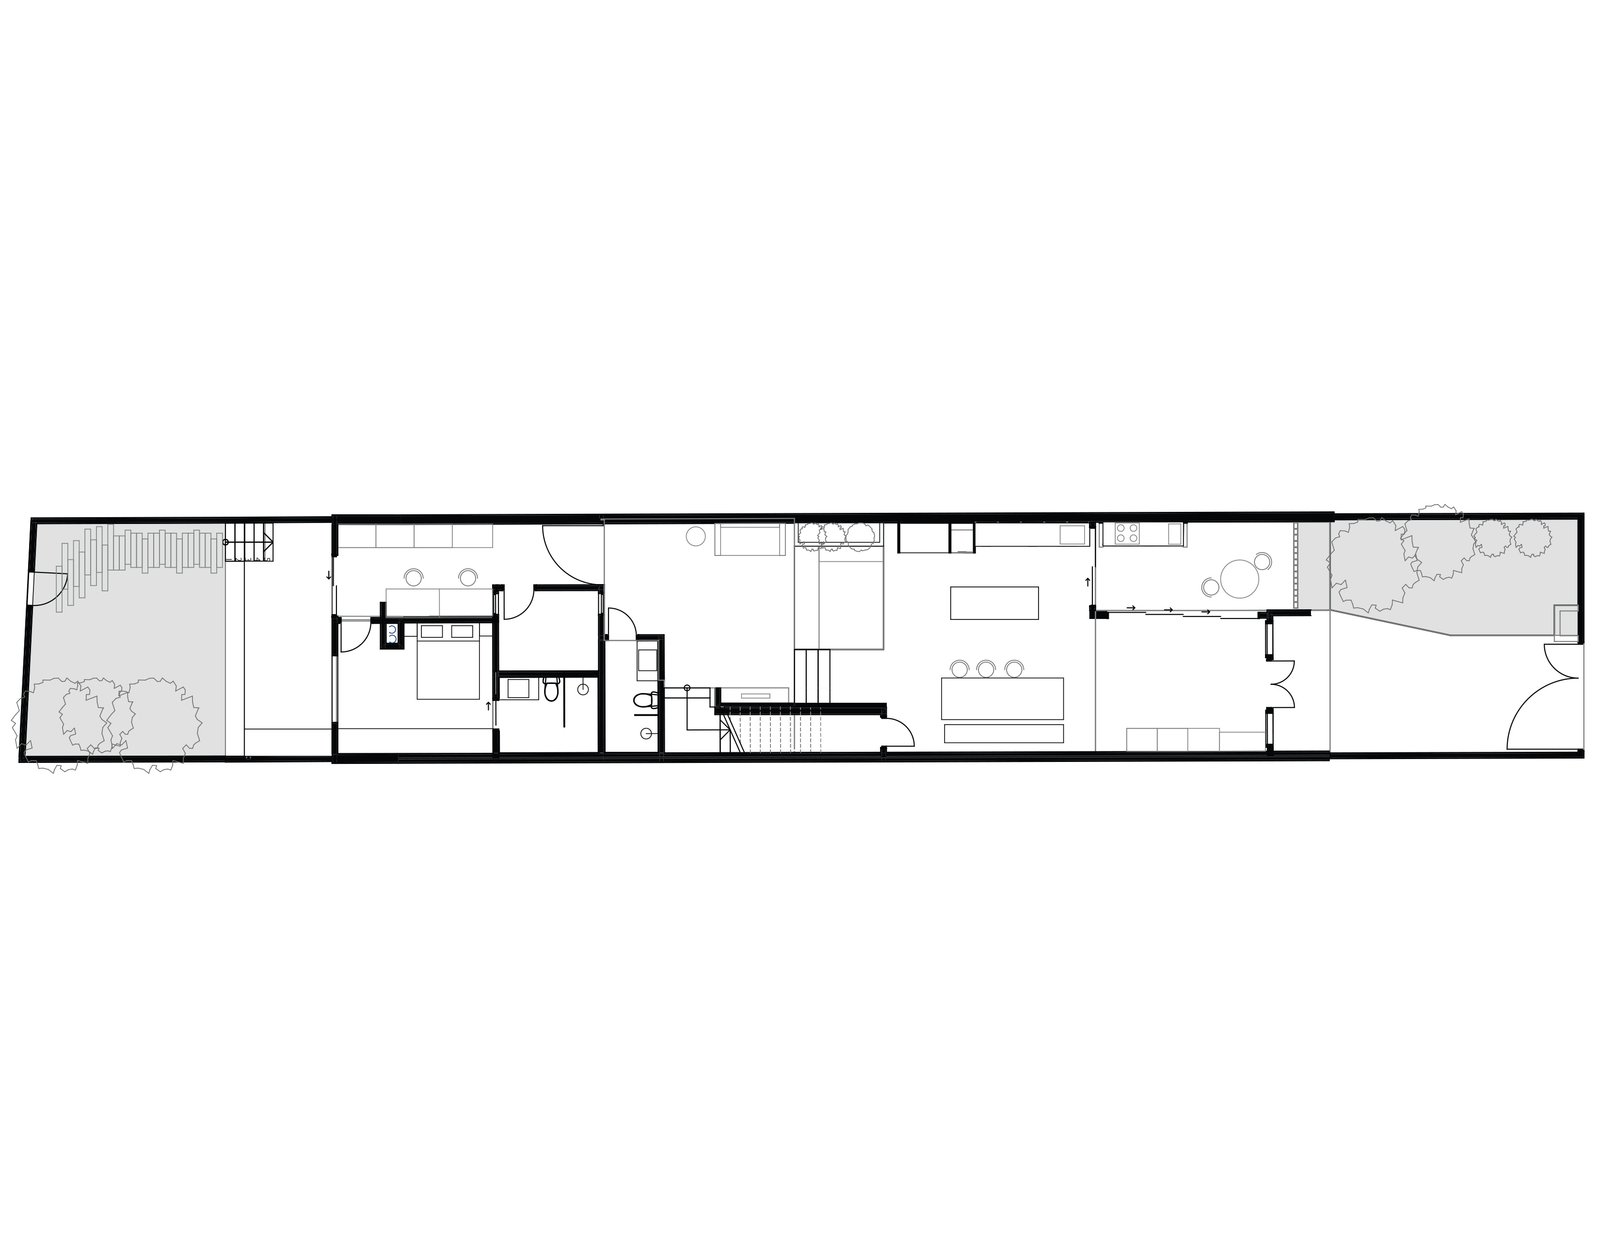 Heng House first floor plan  Photo 19 of 22 in An Imaginative Courtyard House in Singapore Makes Room for Multiple Generations